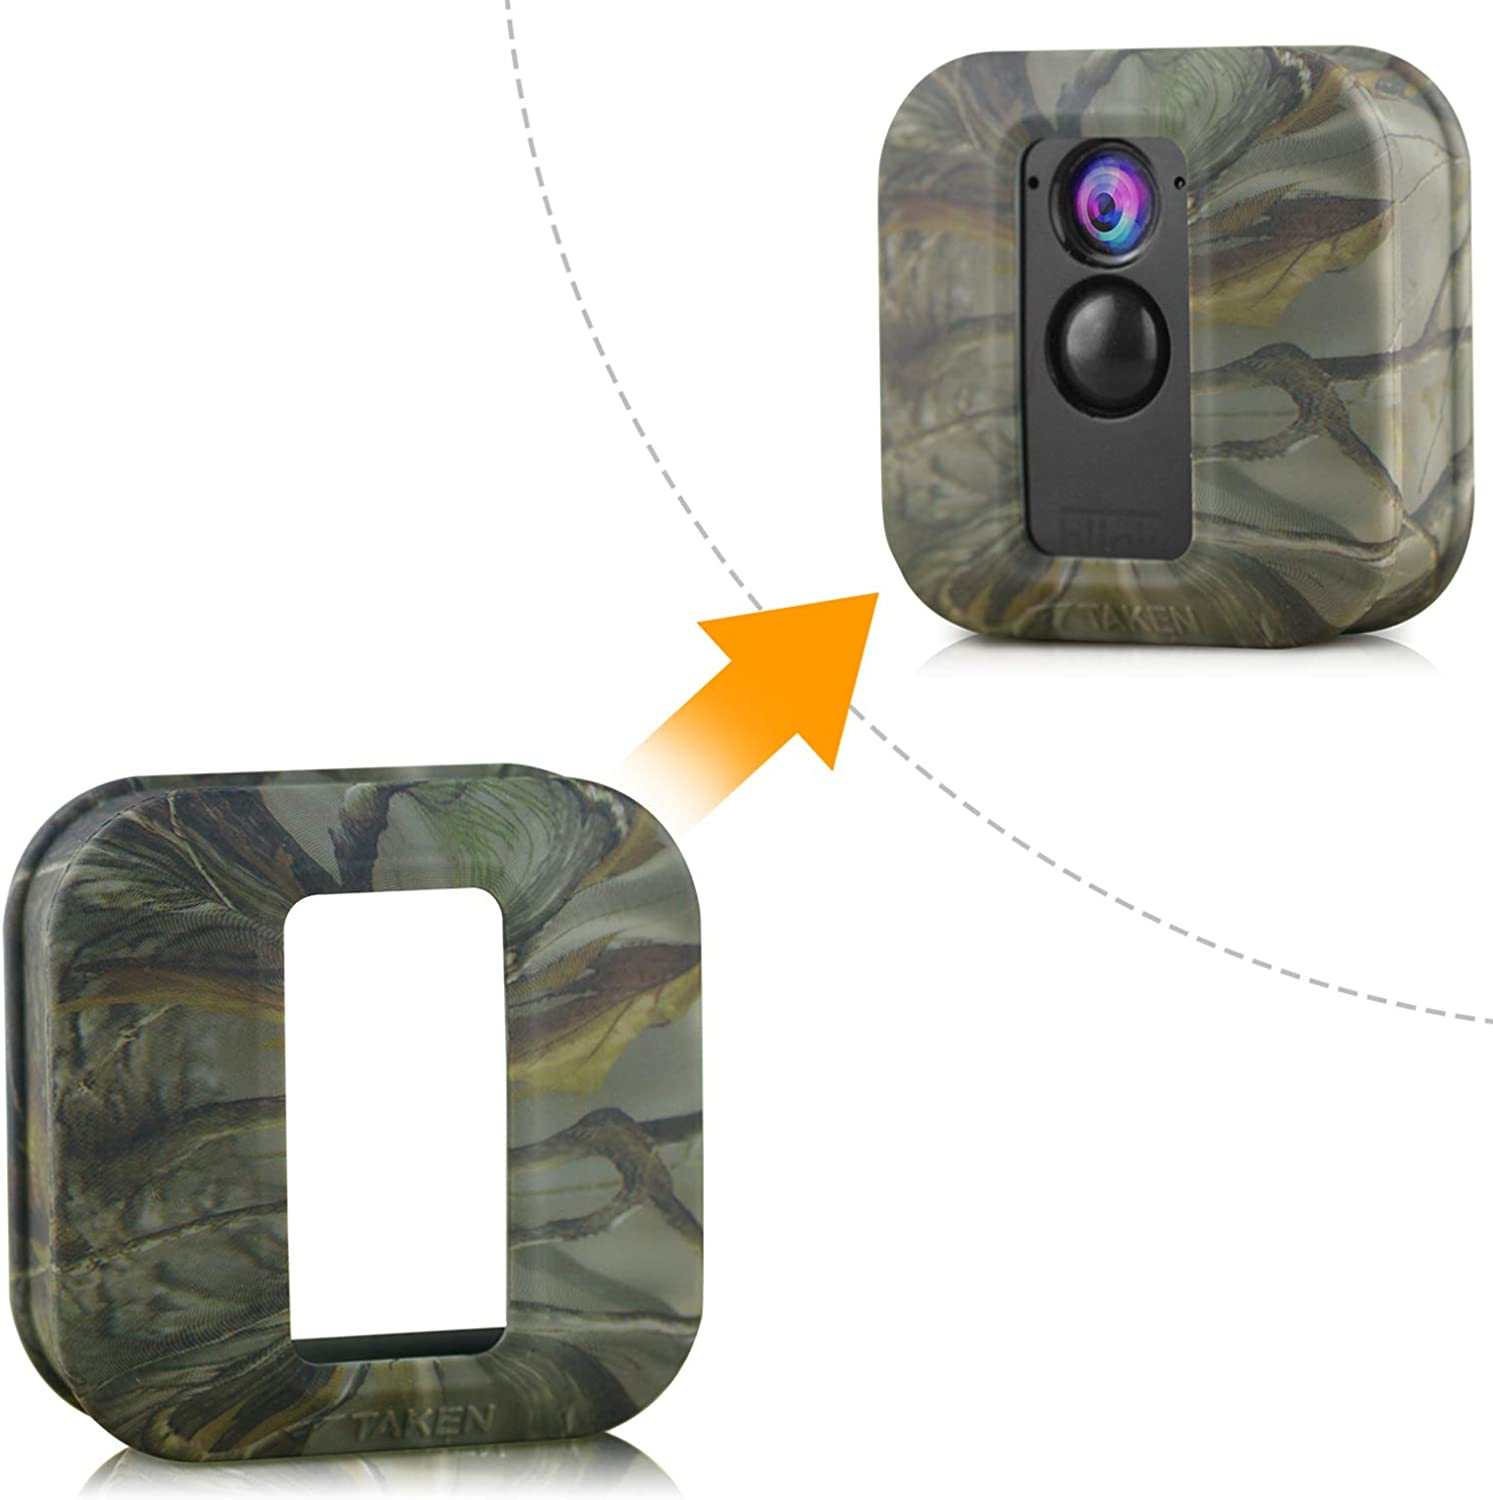 Blink XT Skin Max 46% OFF Silicone for Secur Seattle Mall XT2 Outdoor Home